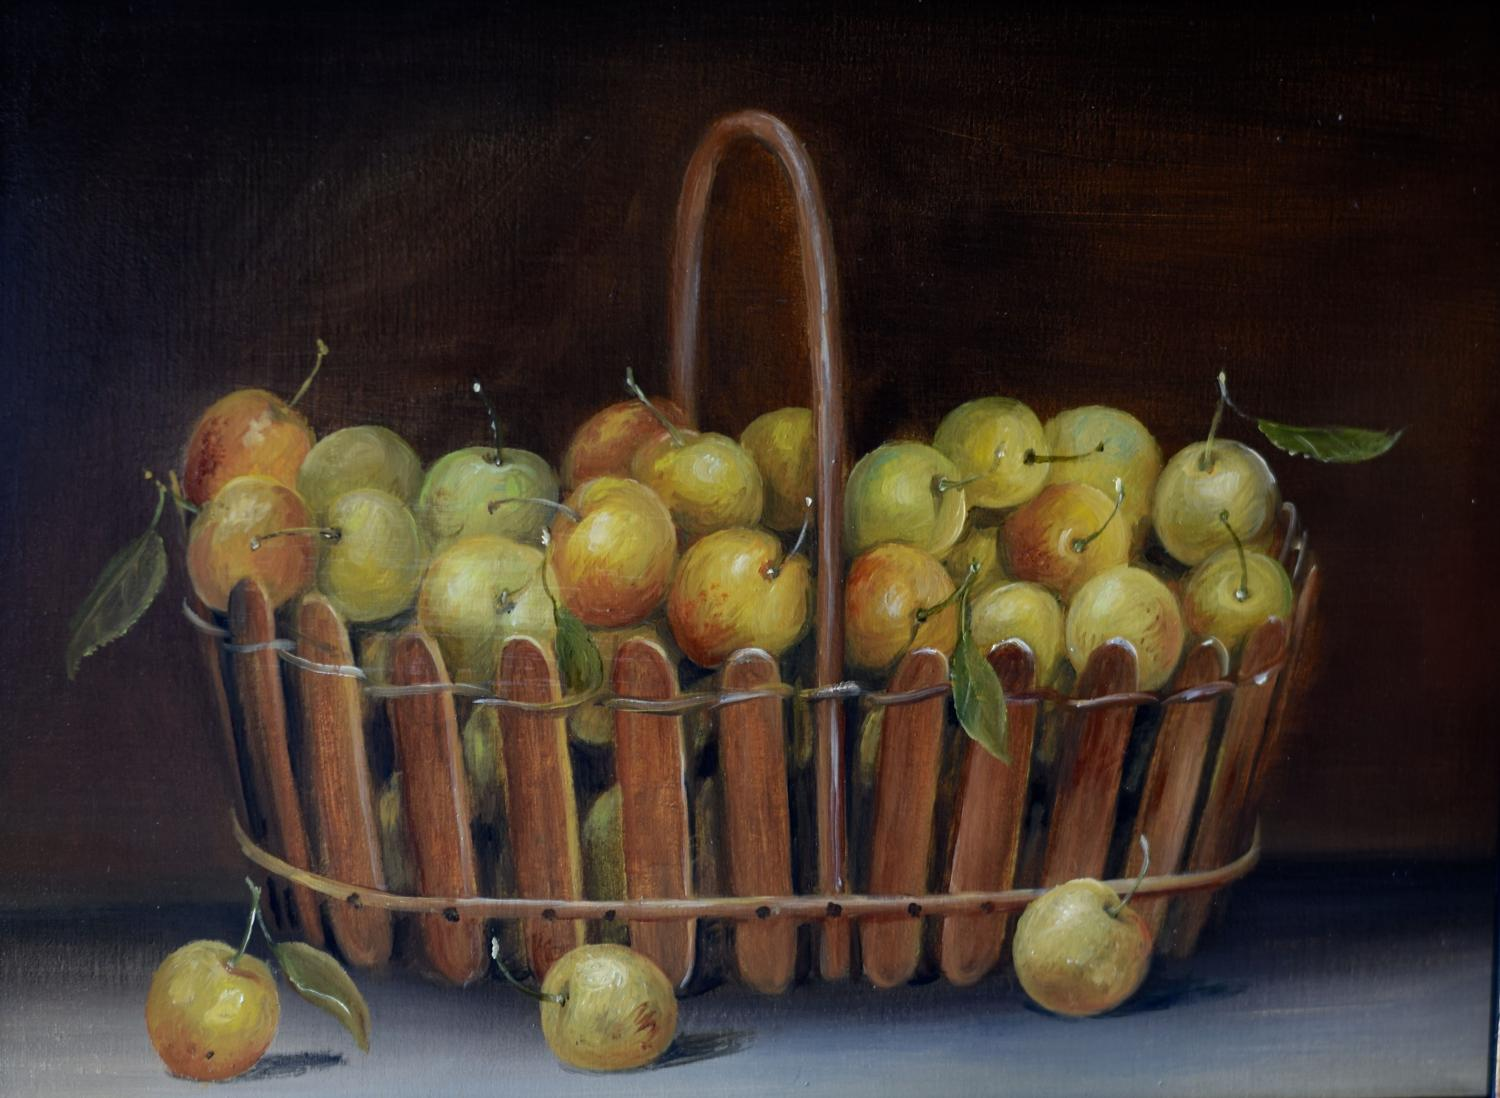 Basket of mirabelles